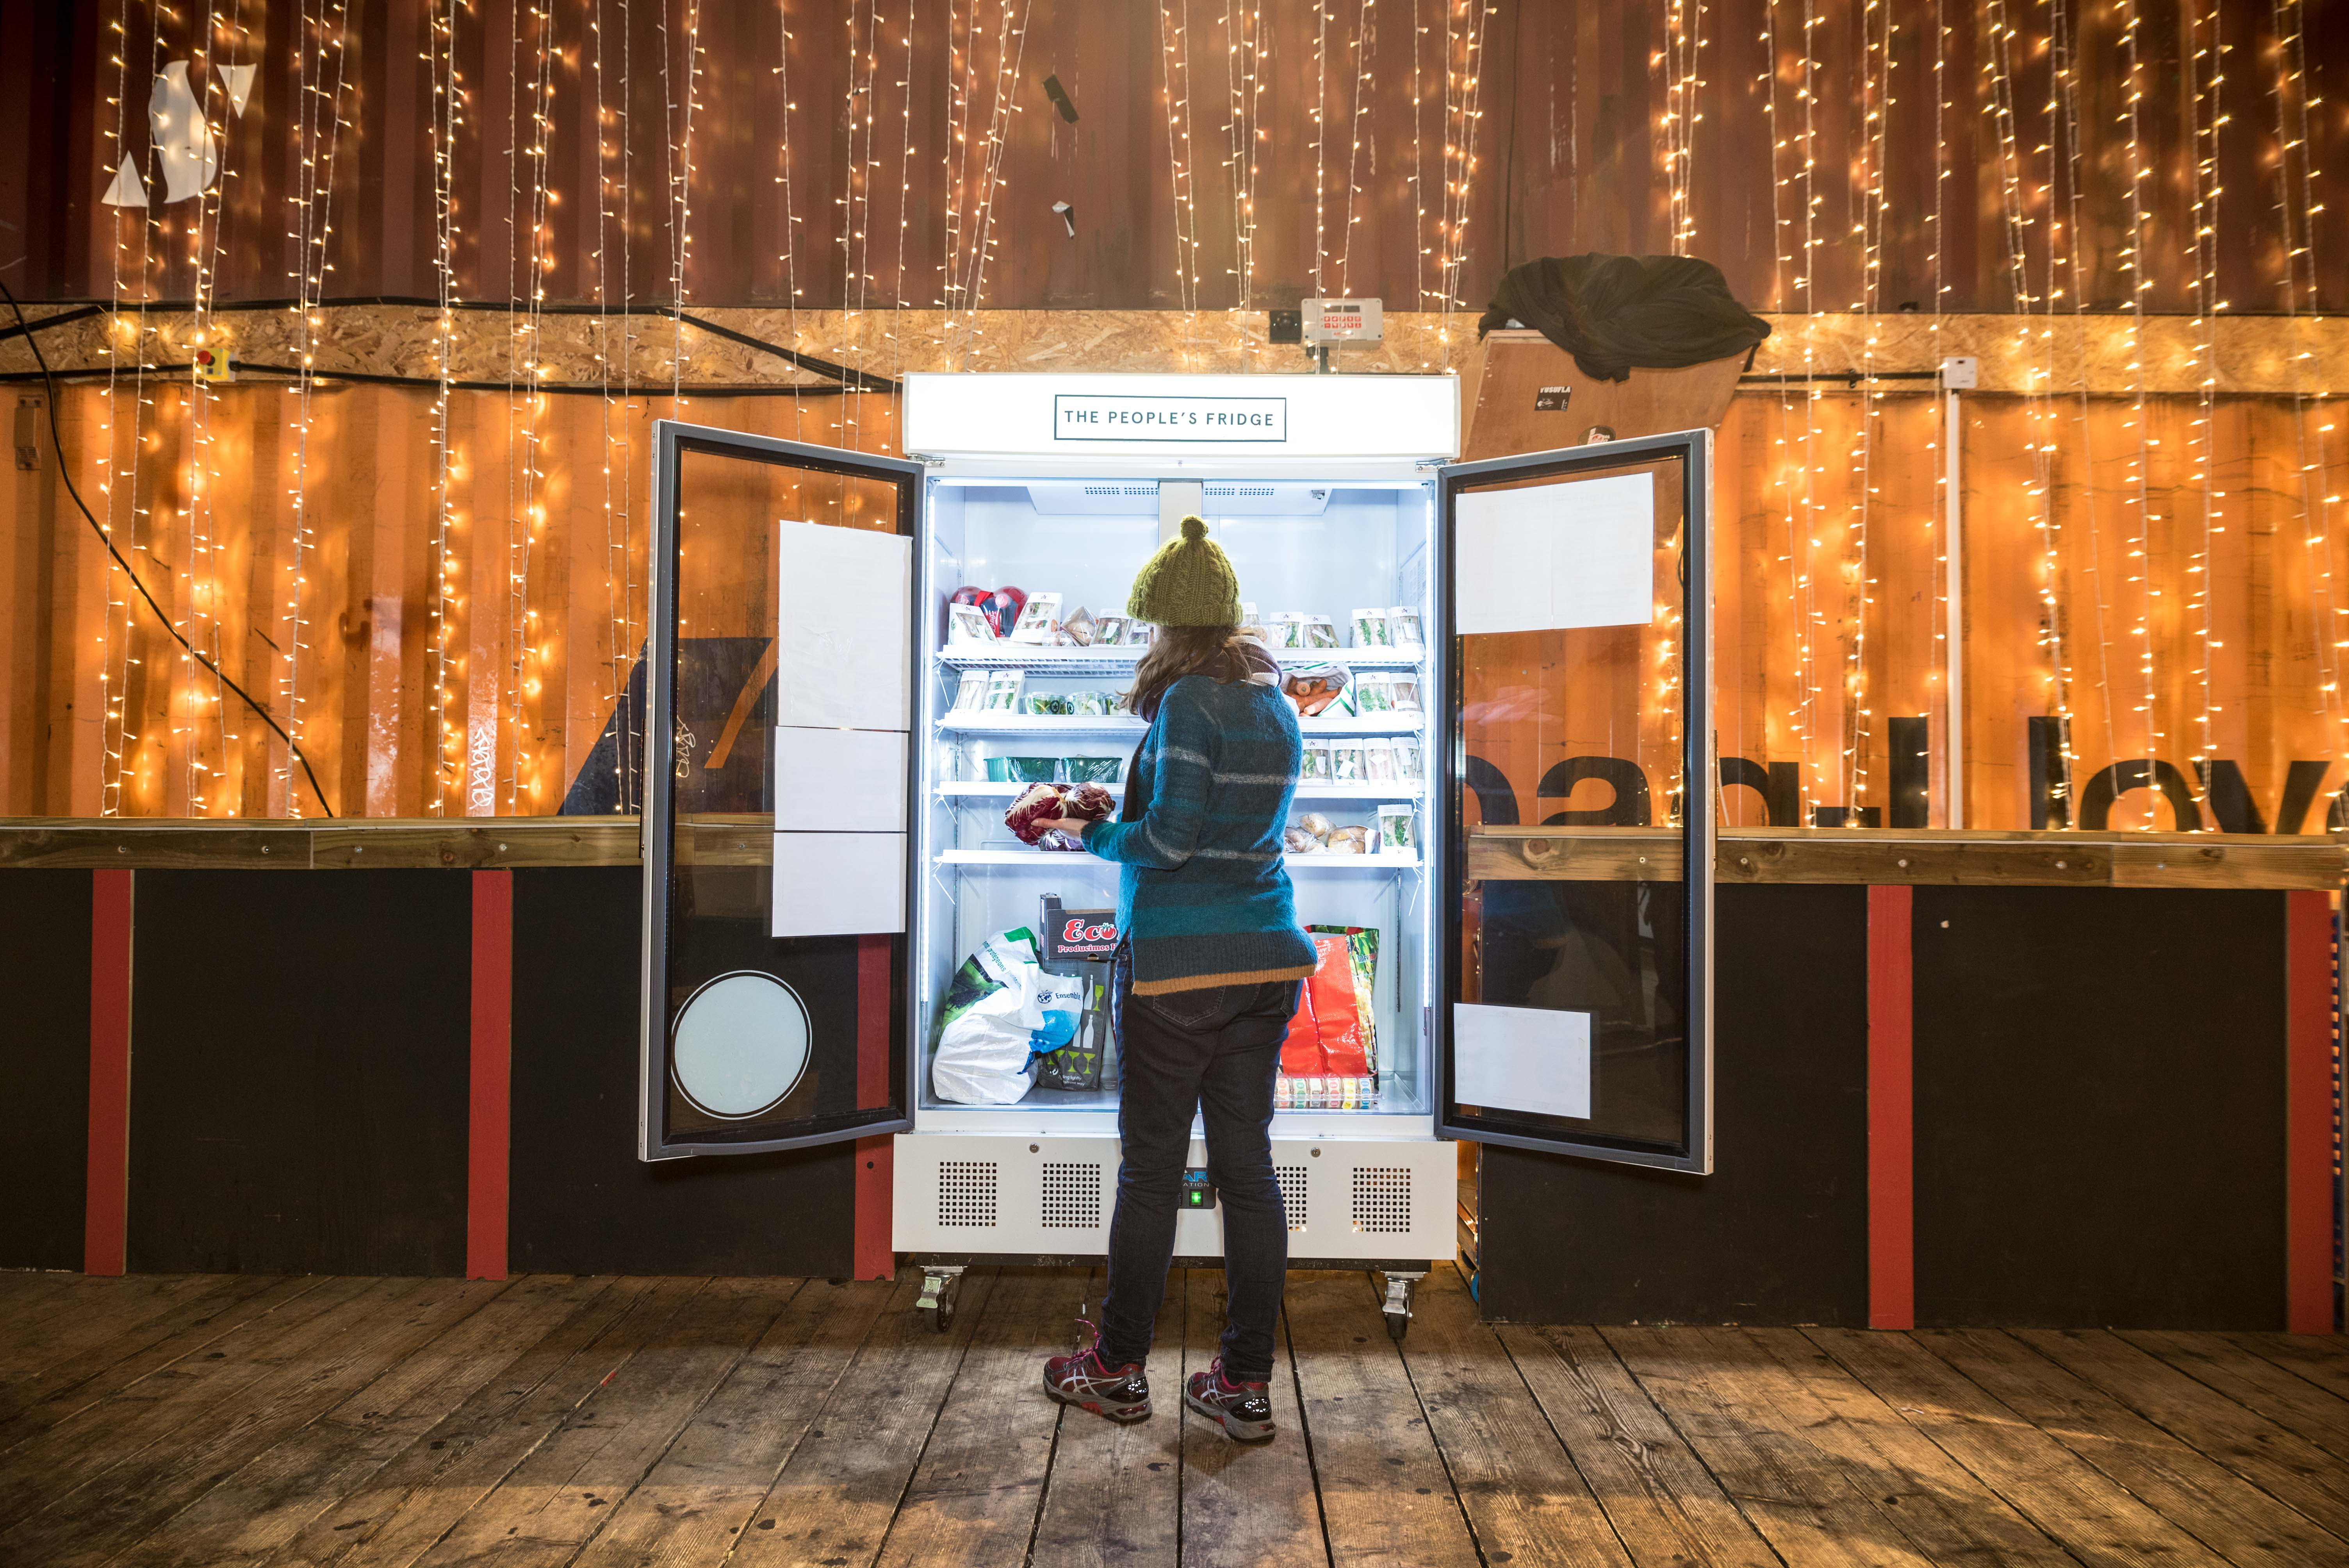 Cool! London opens doors on its first People's Fridge